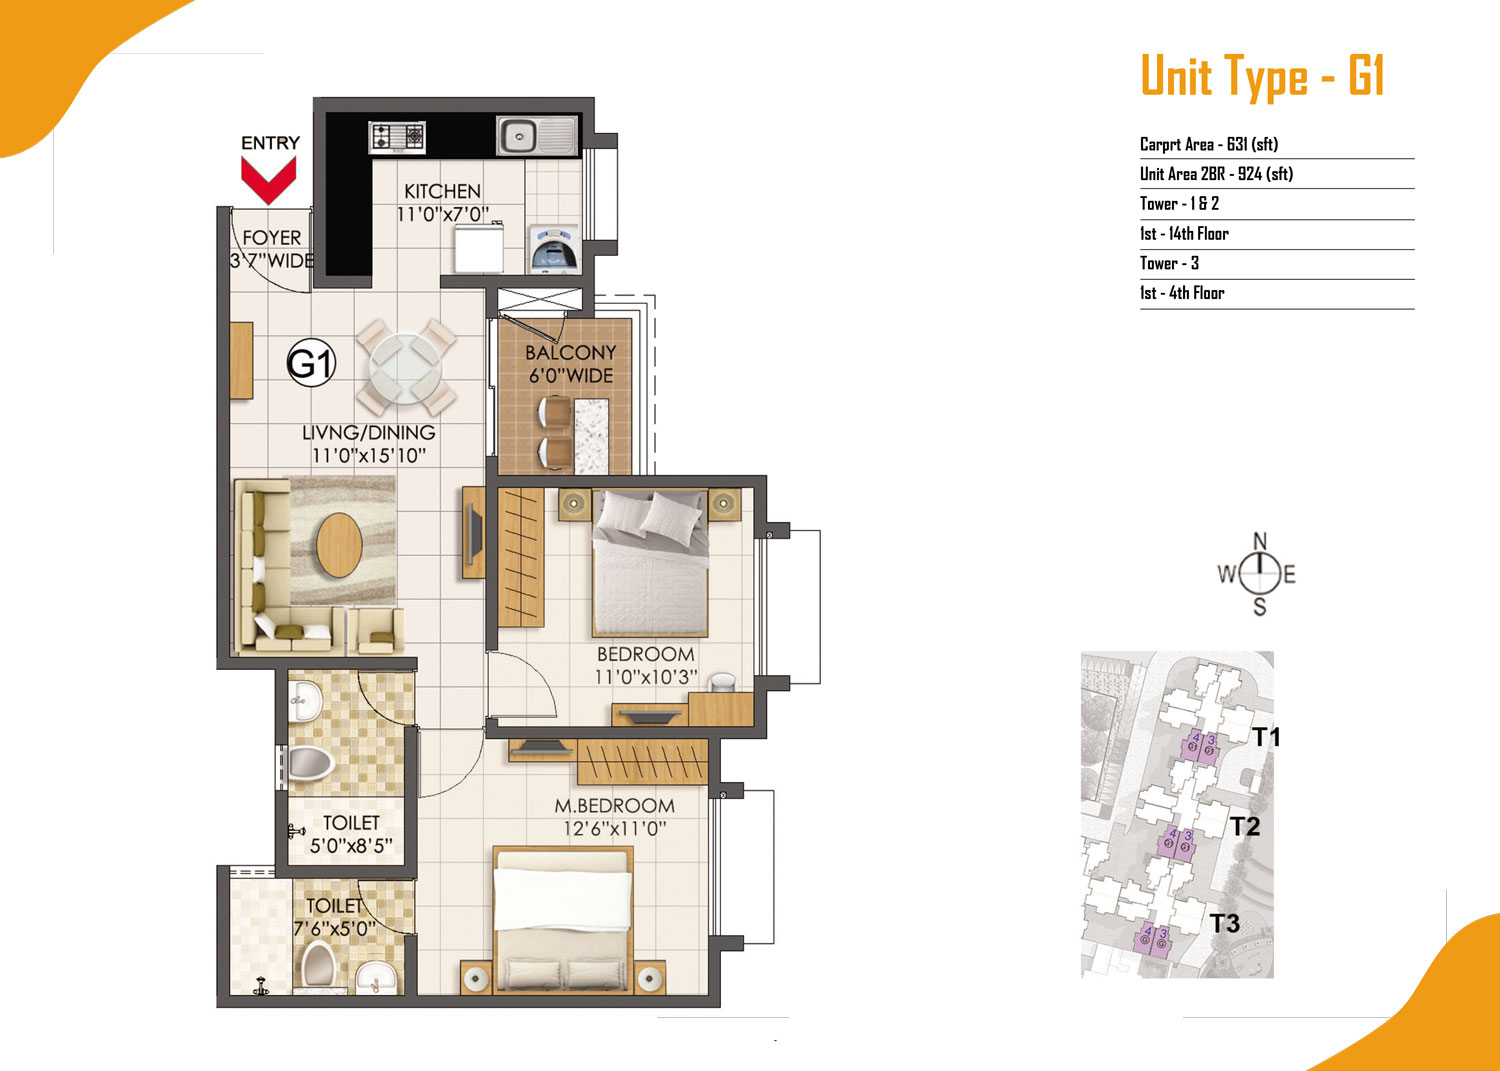 Type G1 - 2 Bed - 924 Sq Ft